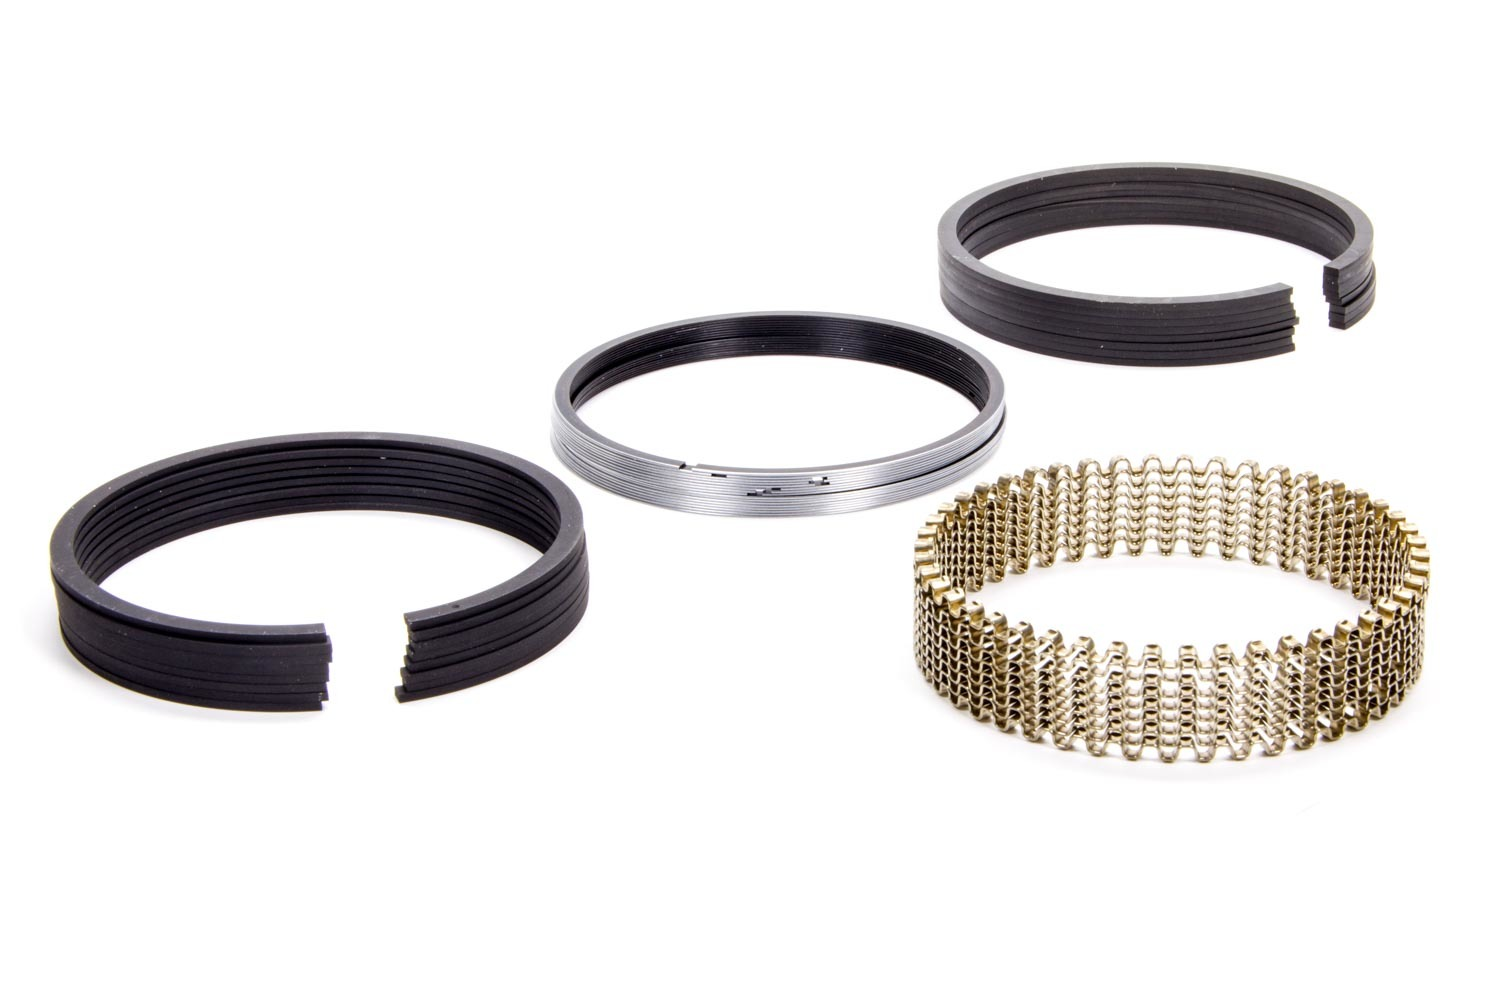 Hastings 139060 Piston Rings, 4.060 in Bore, 5/64 x 5/64 x 3/16 in Thick, Standard Tension, Iron, 8 Cylinder, Kit